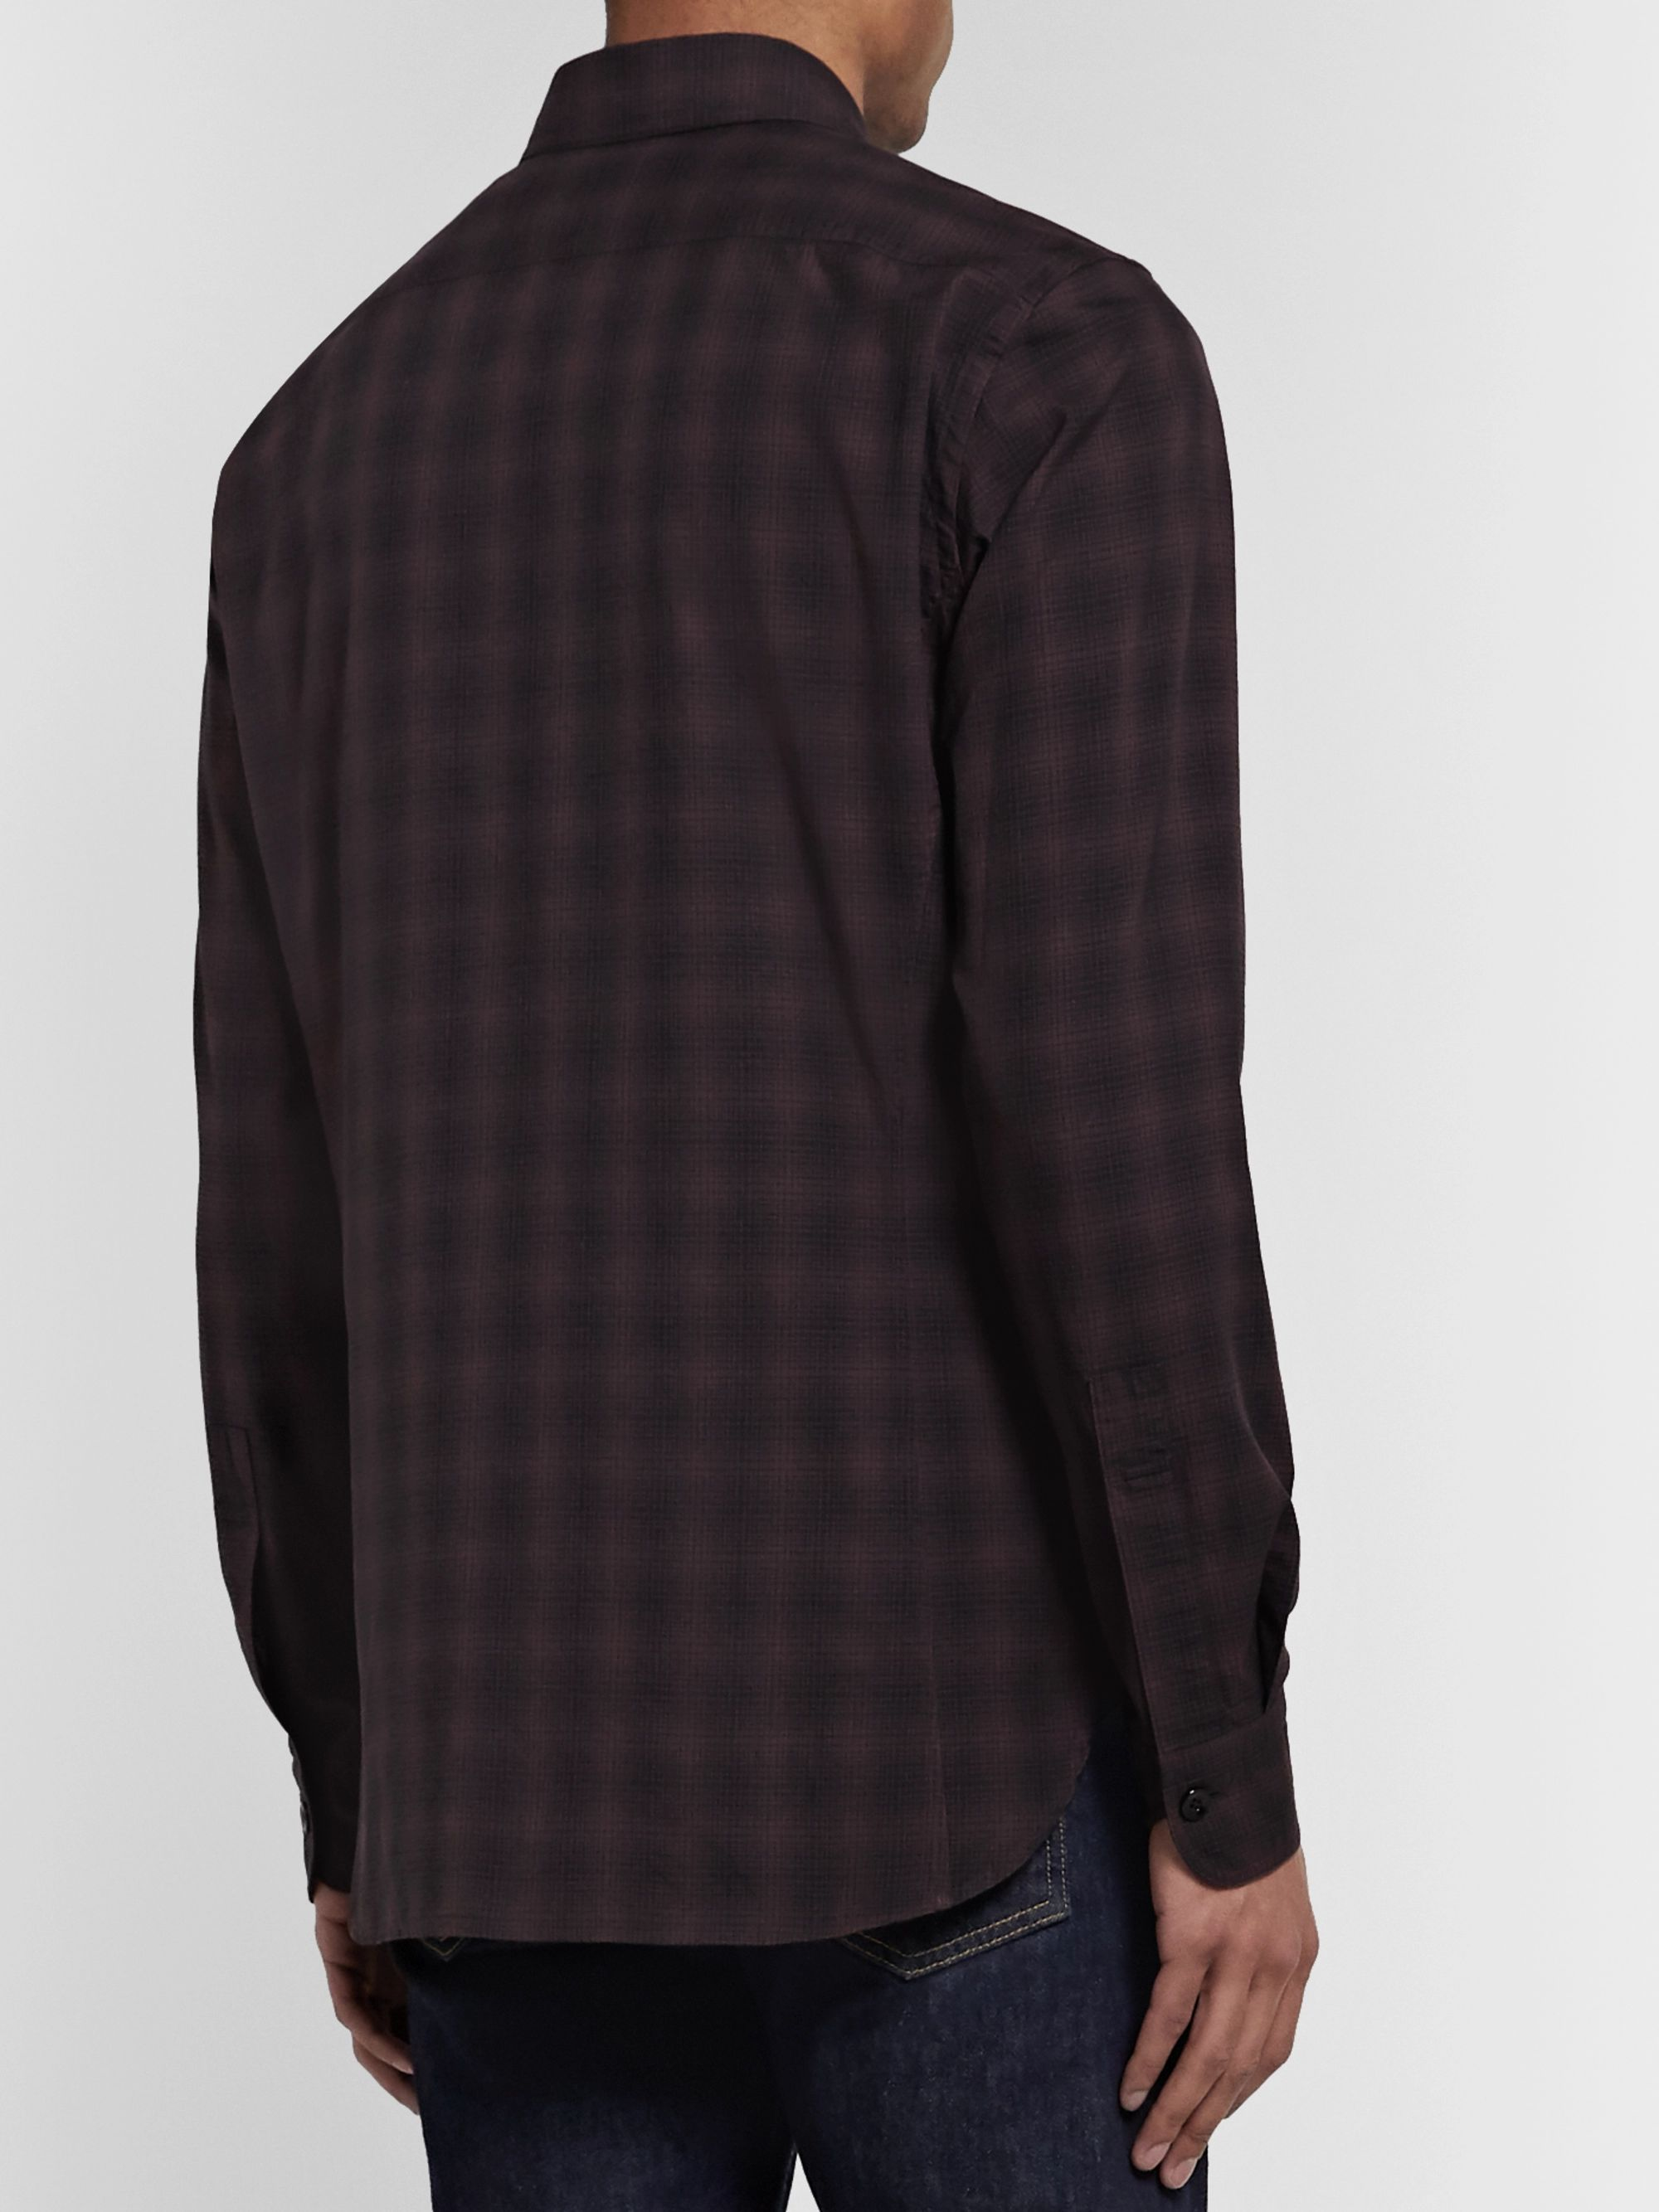 TOM FORD Button-Down Collar Checked Cotton-Poplin Shirt